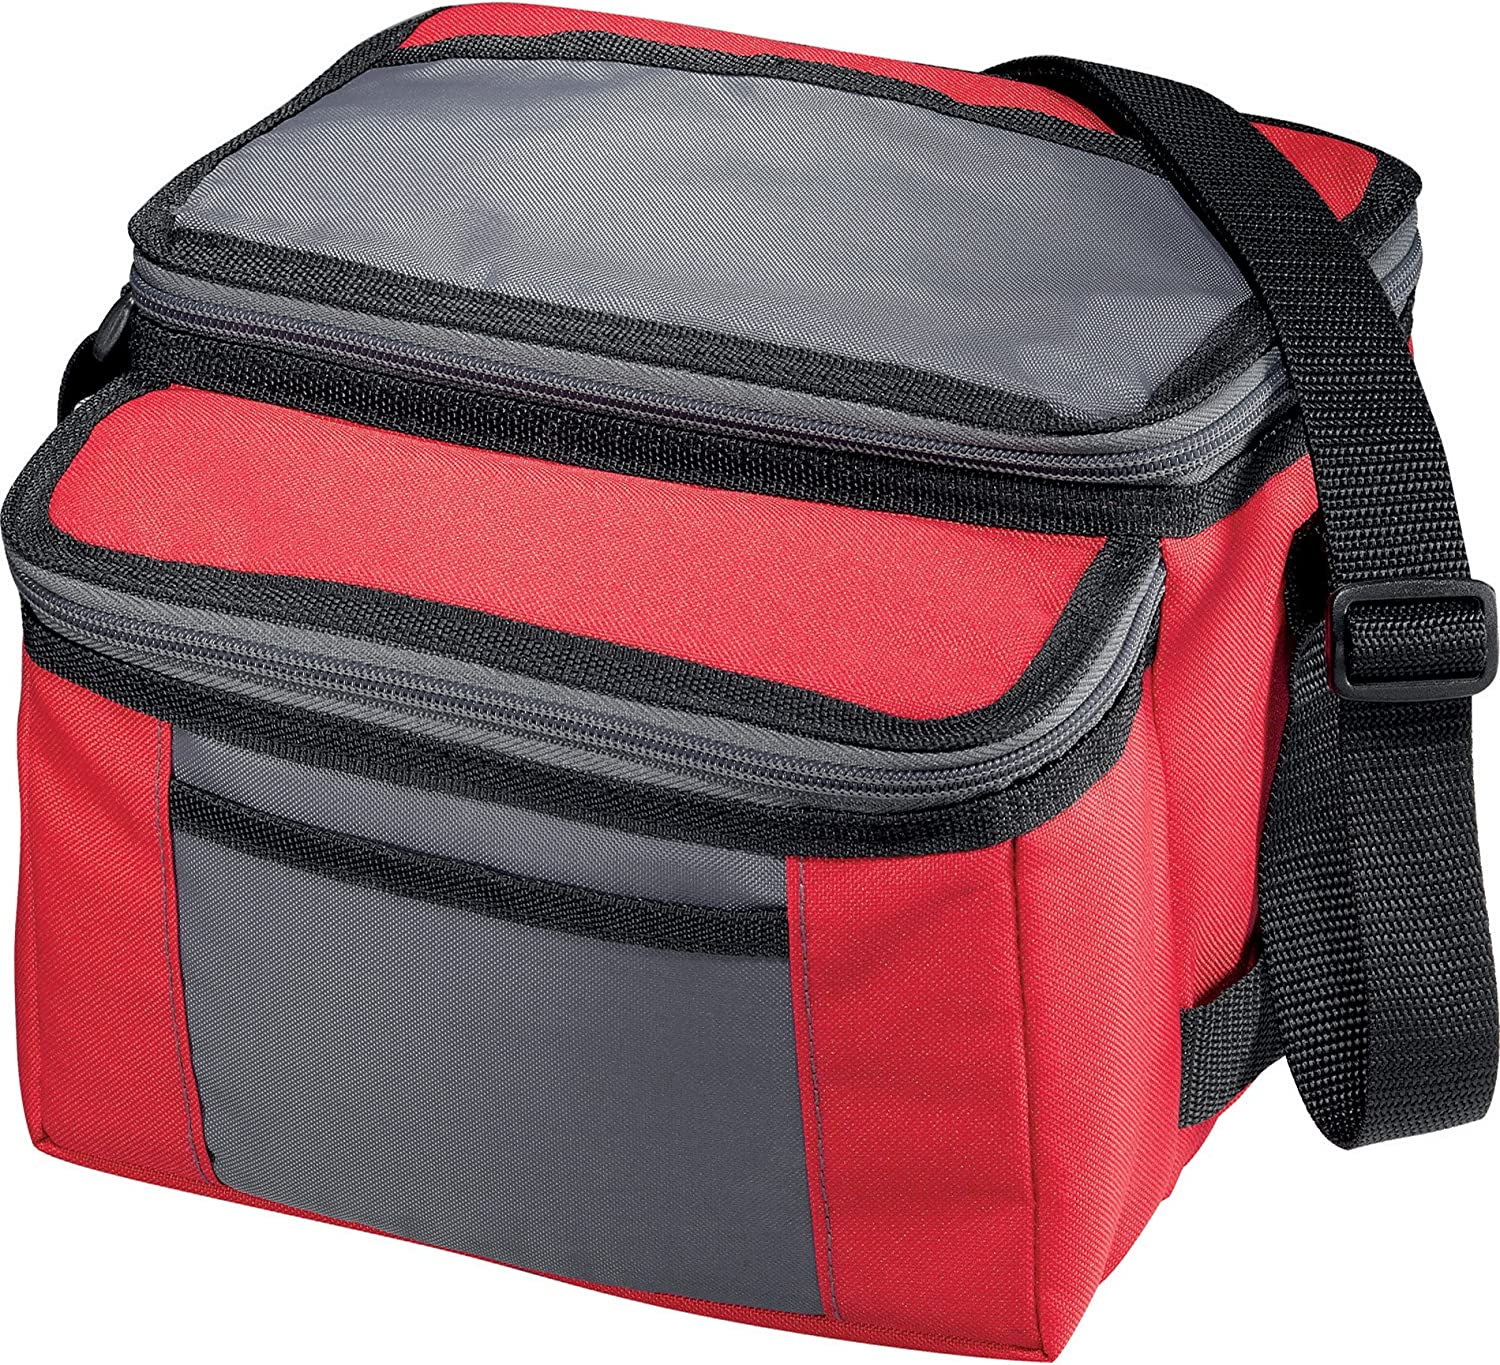 California Innovations Outdoor Sport 9Can Collapsible Cooler, Red